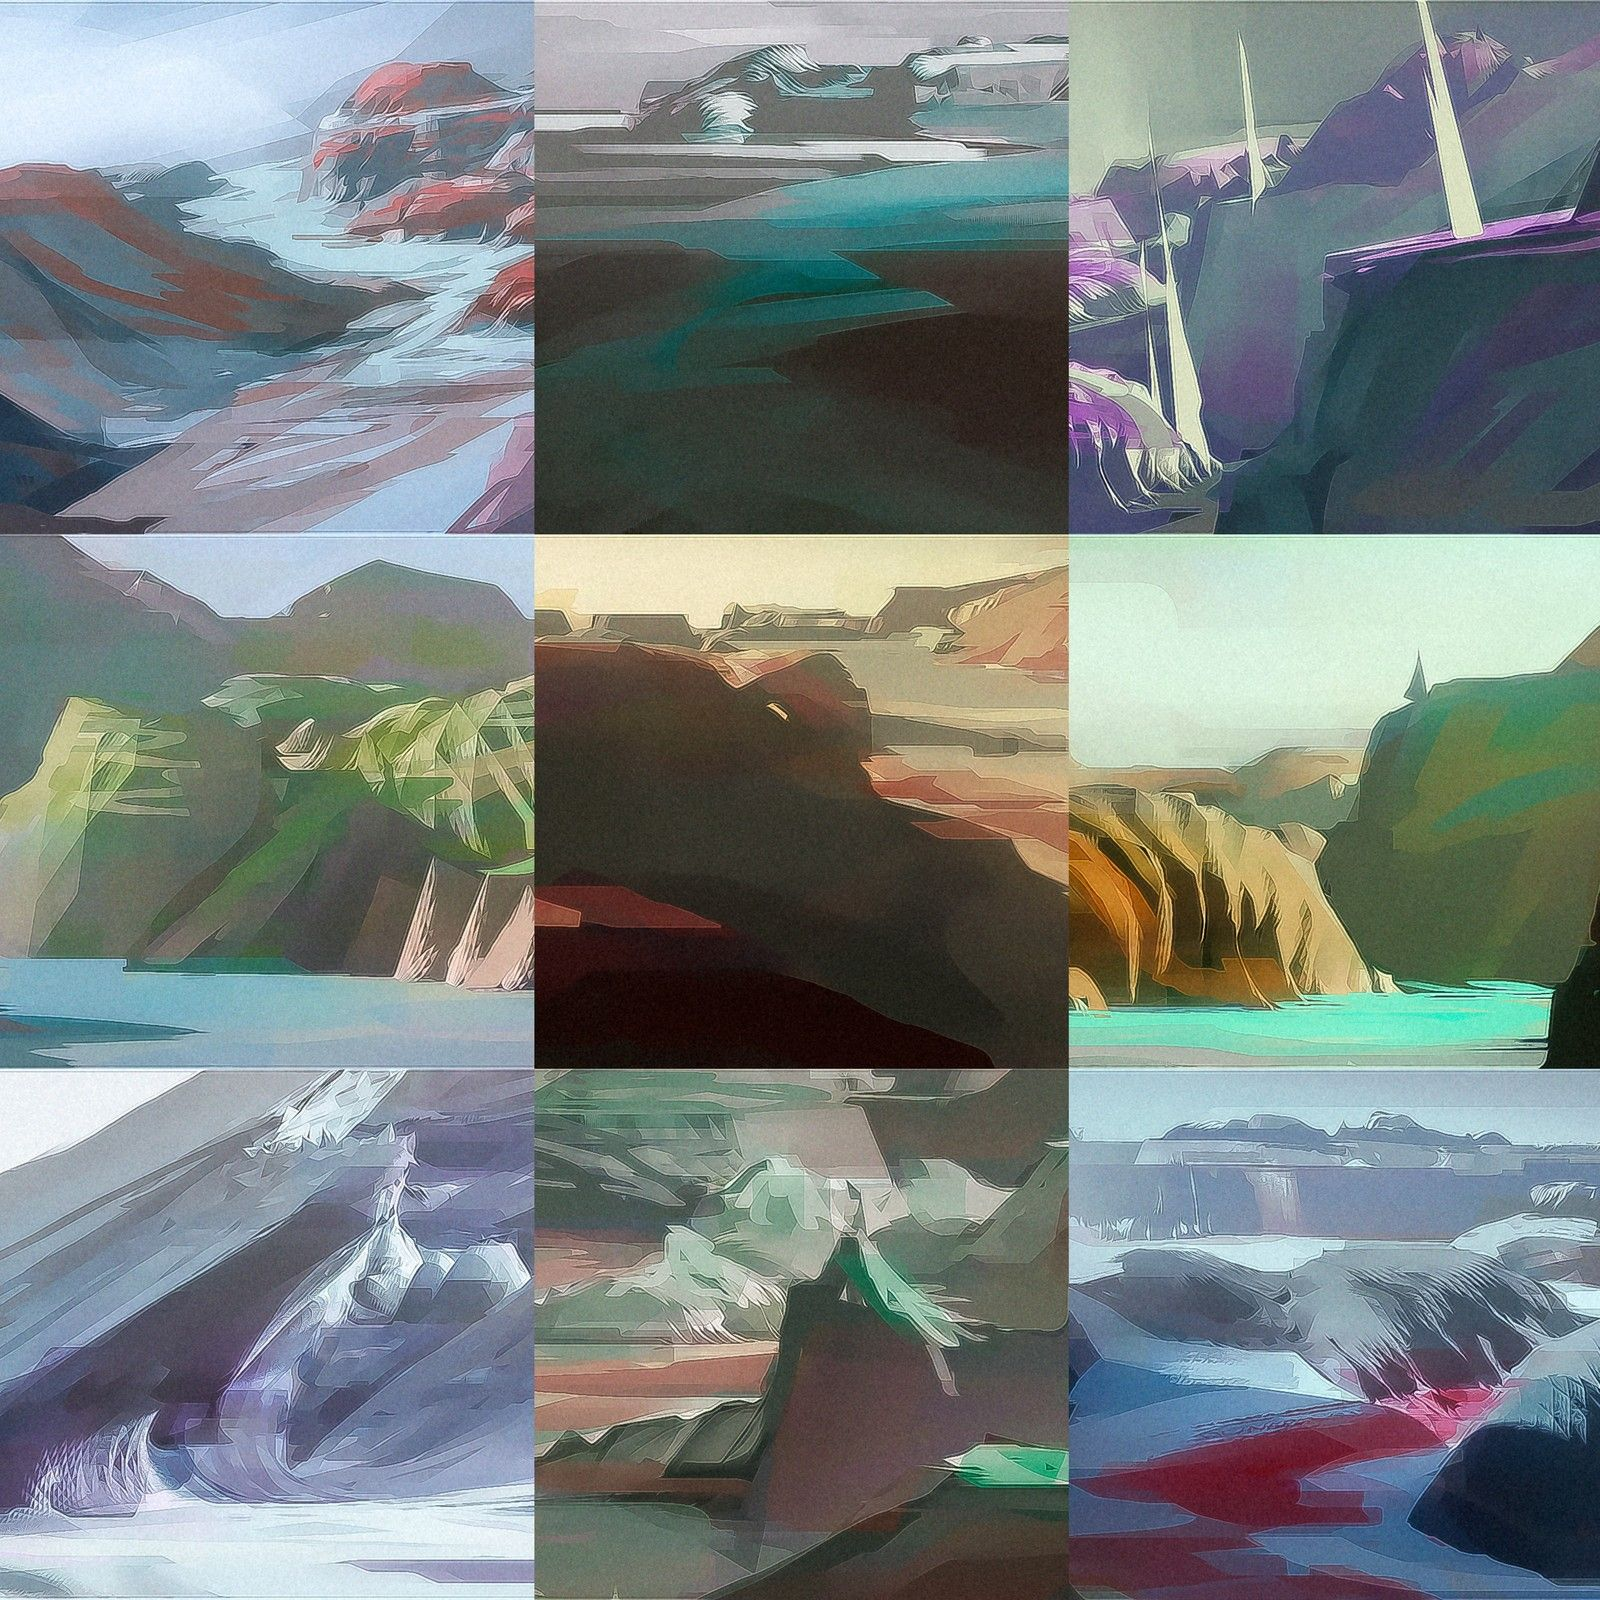 Muted Colors Environment Thumbnails, Stéphane (Wootha) Richard on ArtStation at https://www.artstation.com/artwork/d3gb1